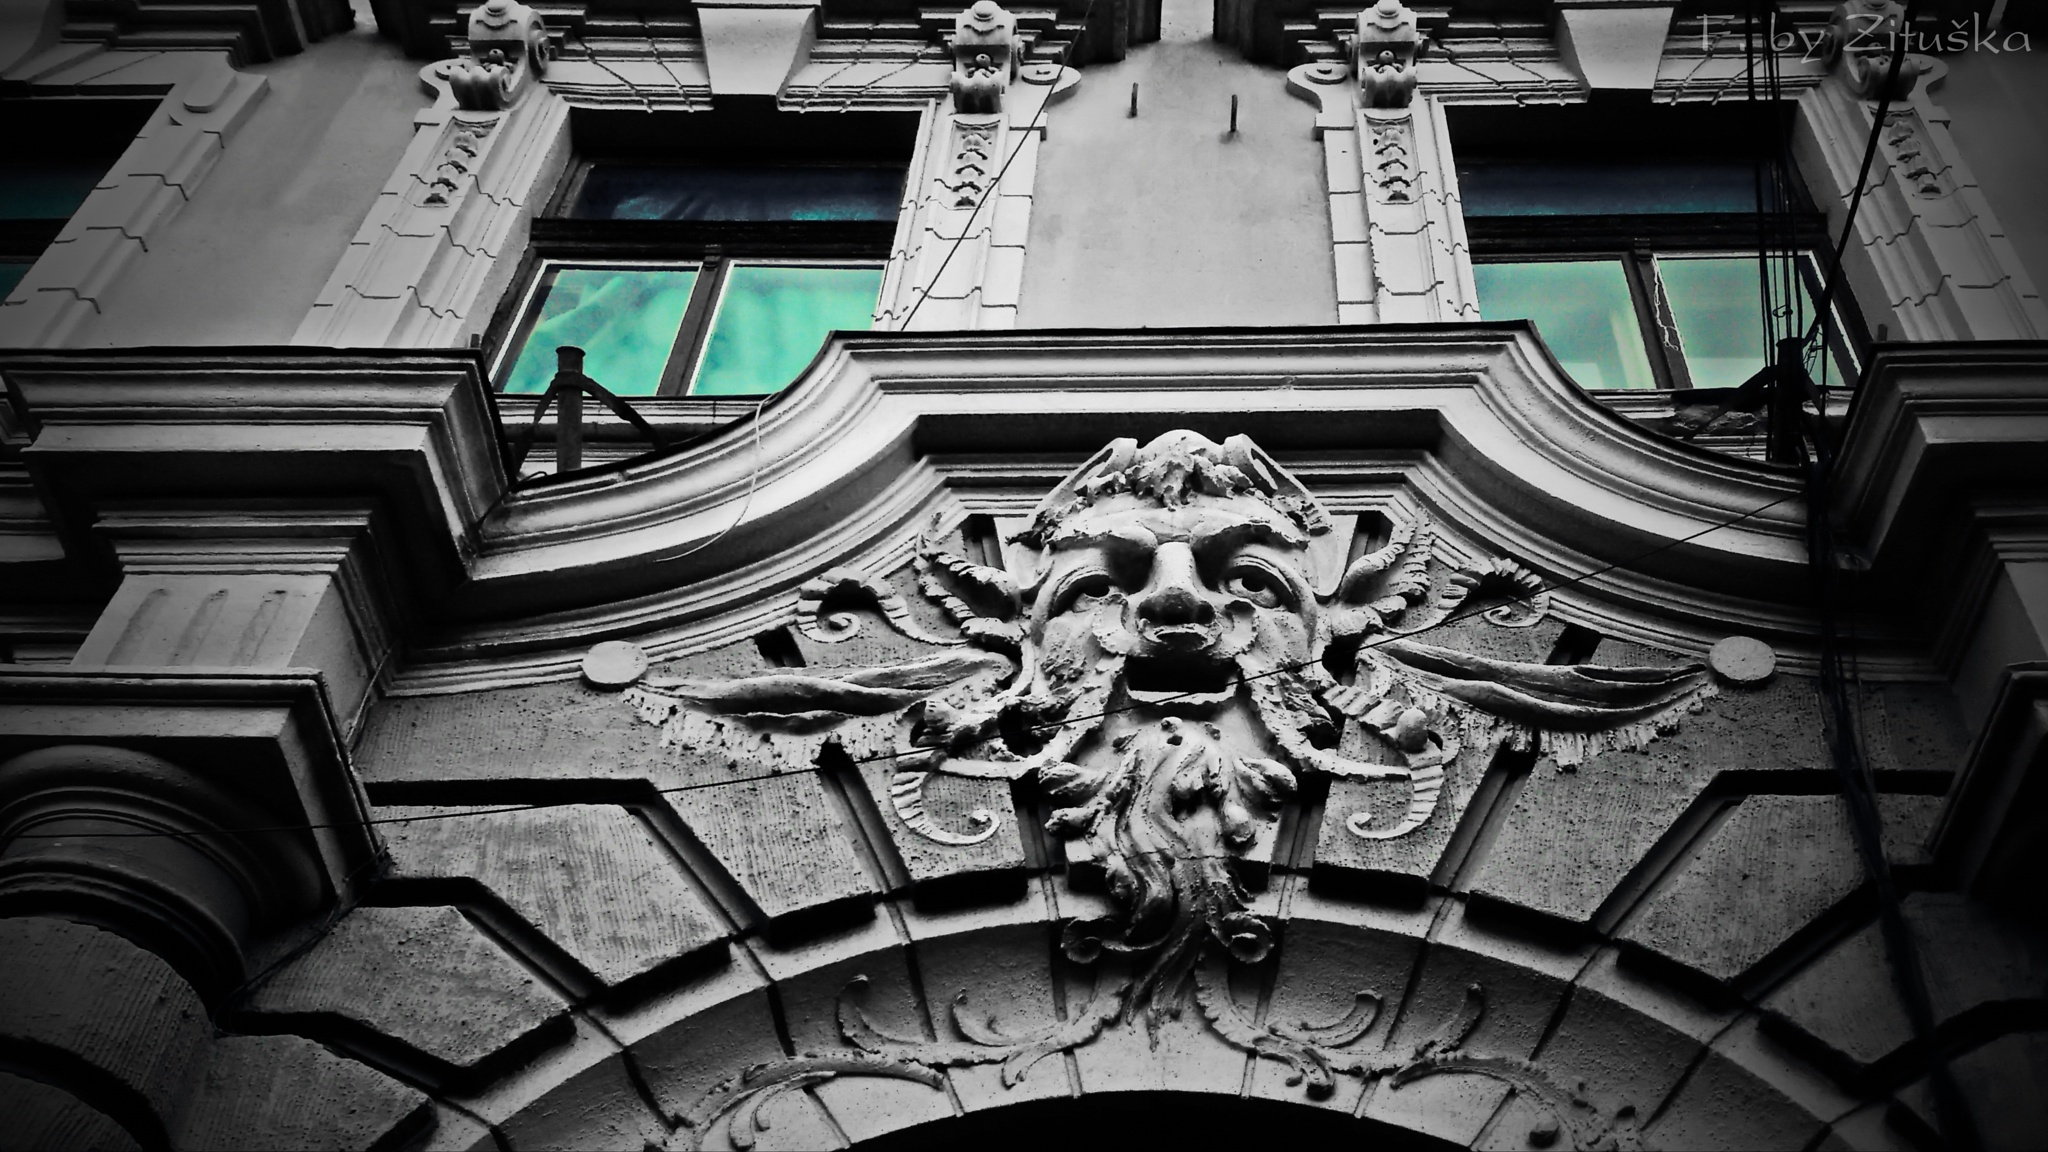 an old building :))  by Zituska